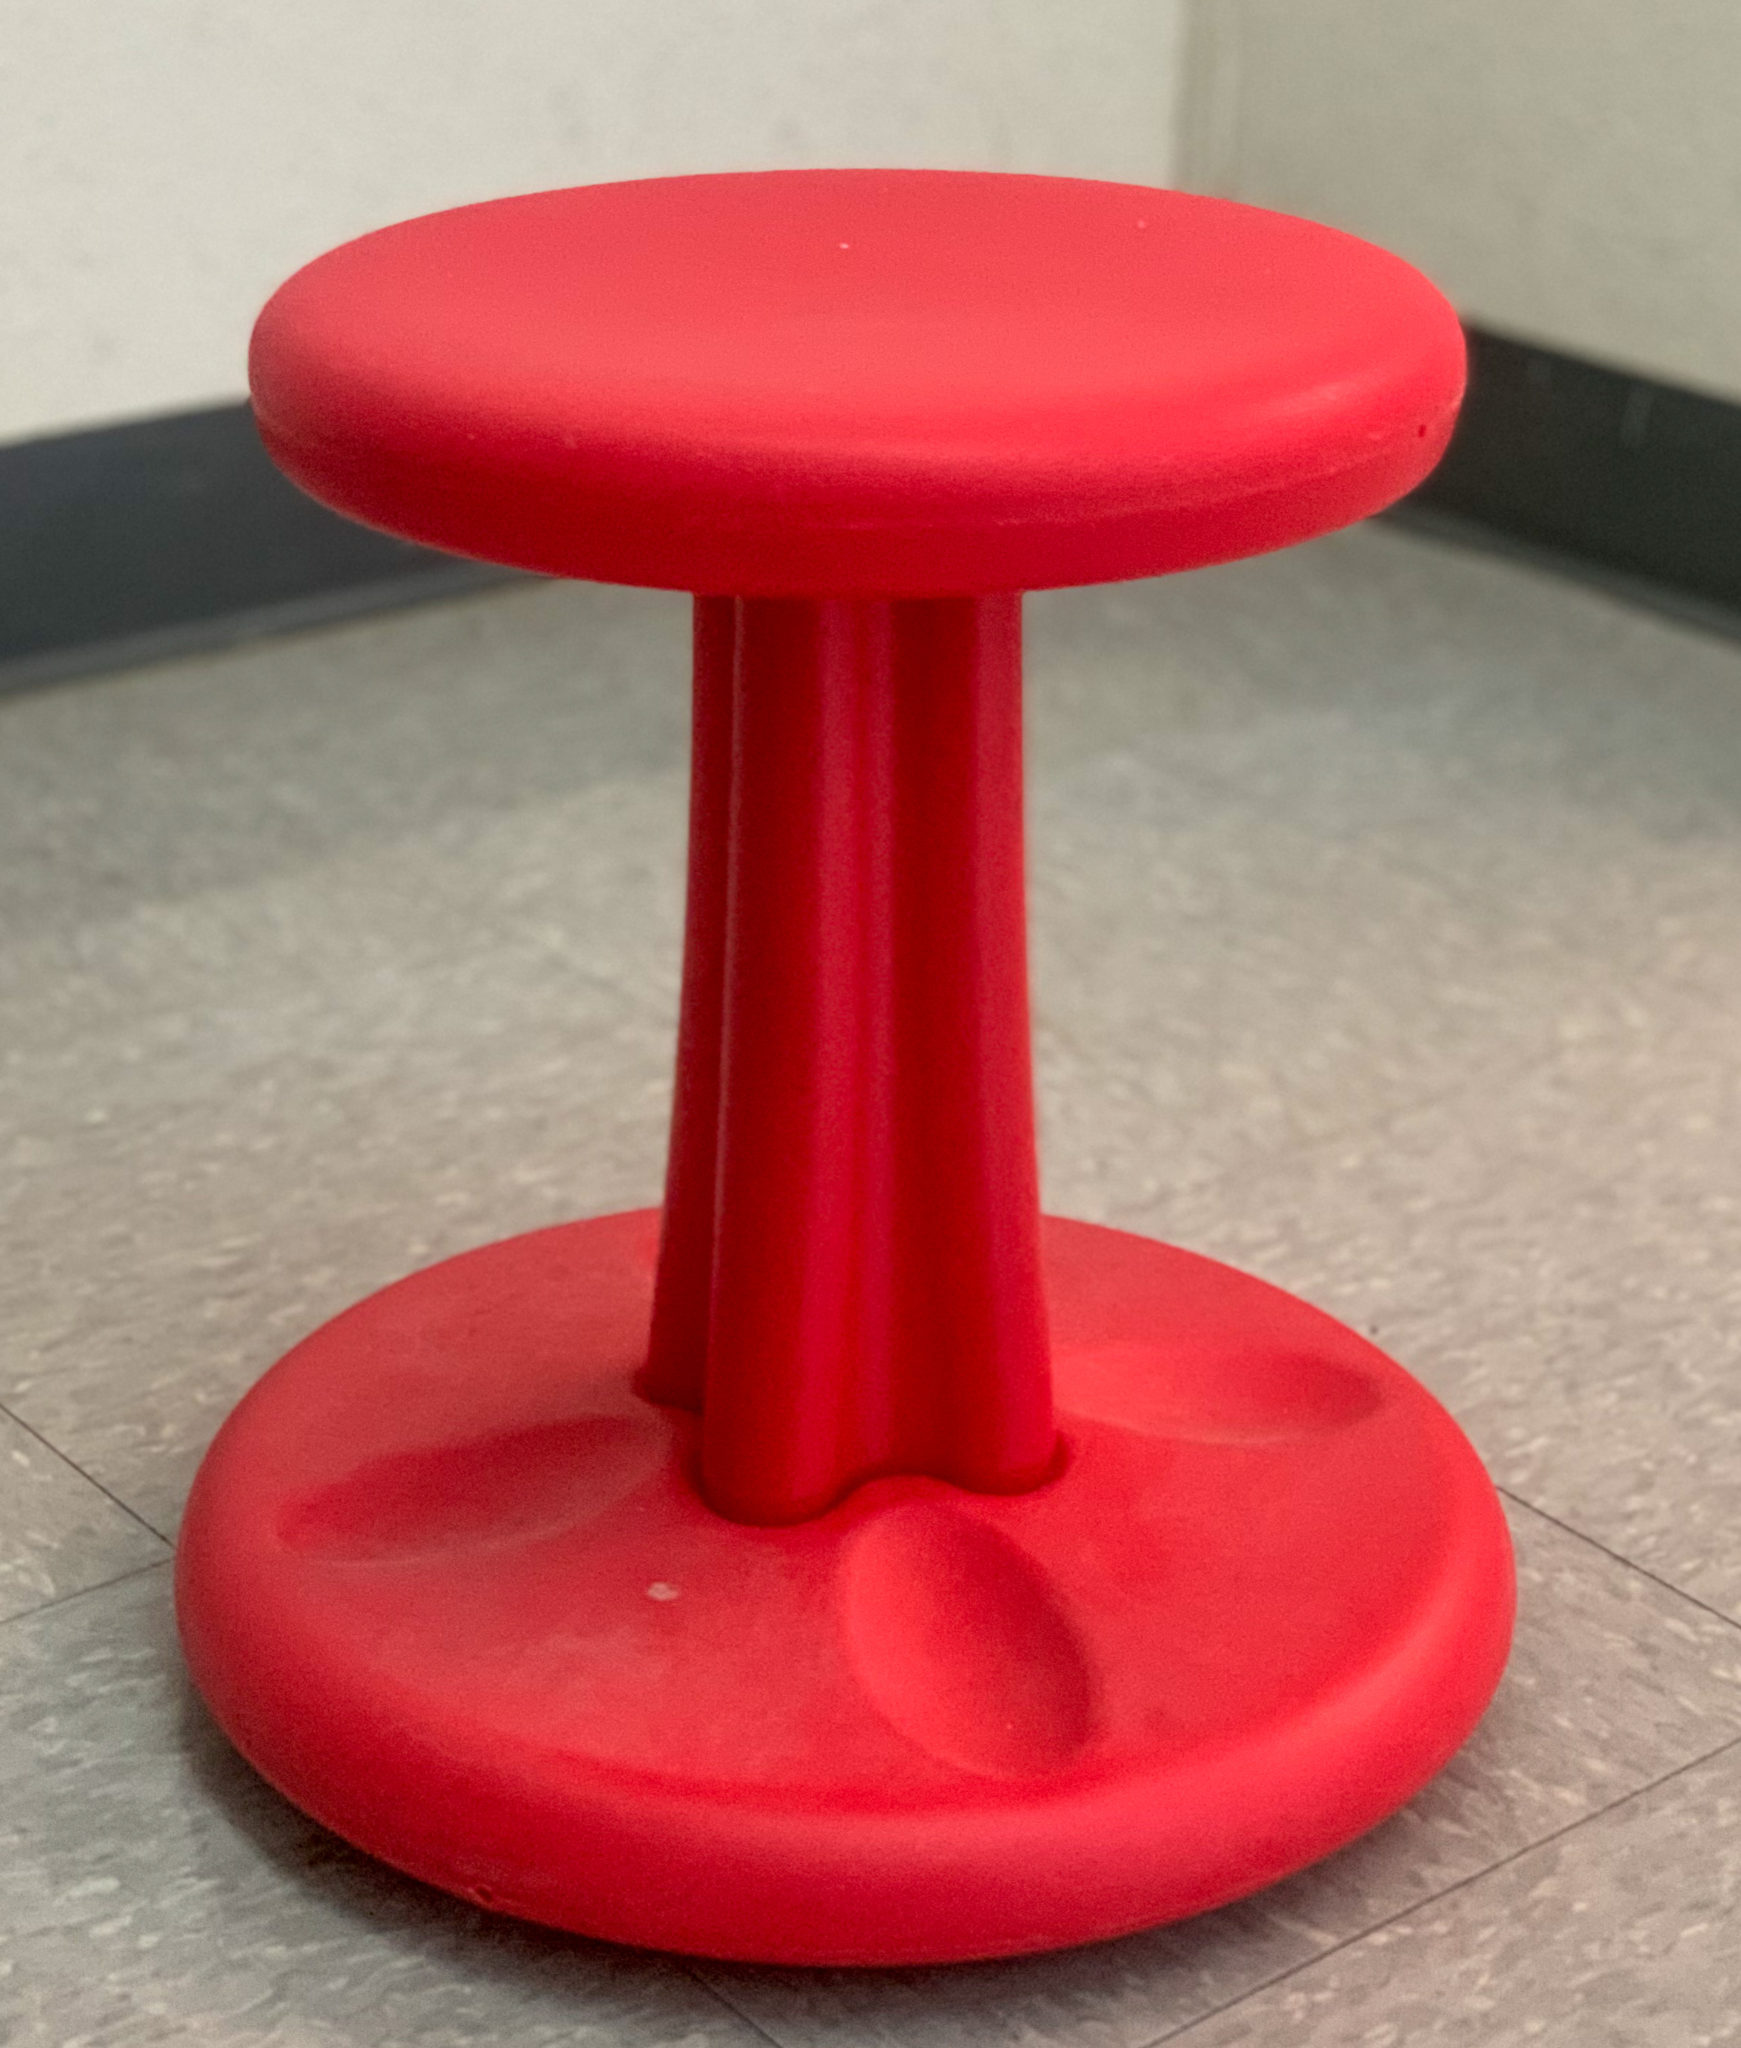 This is a photo of a wobble chair I use in my classroom.